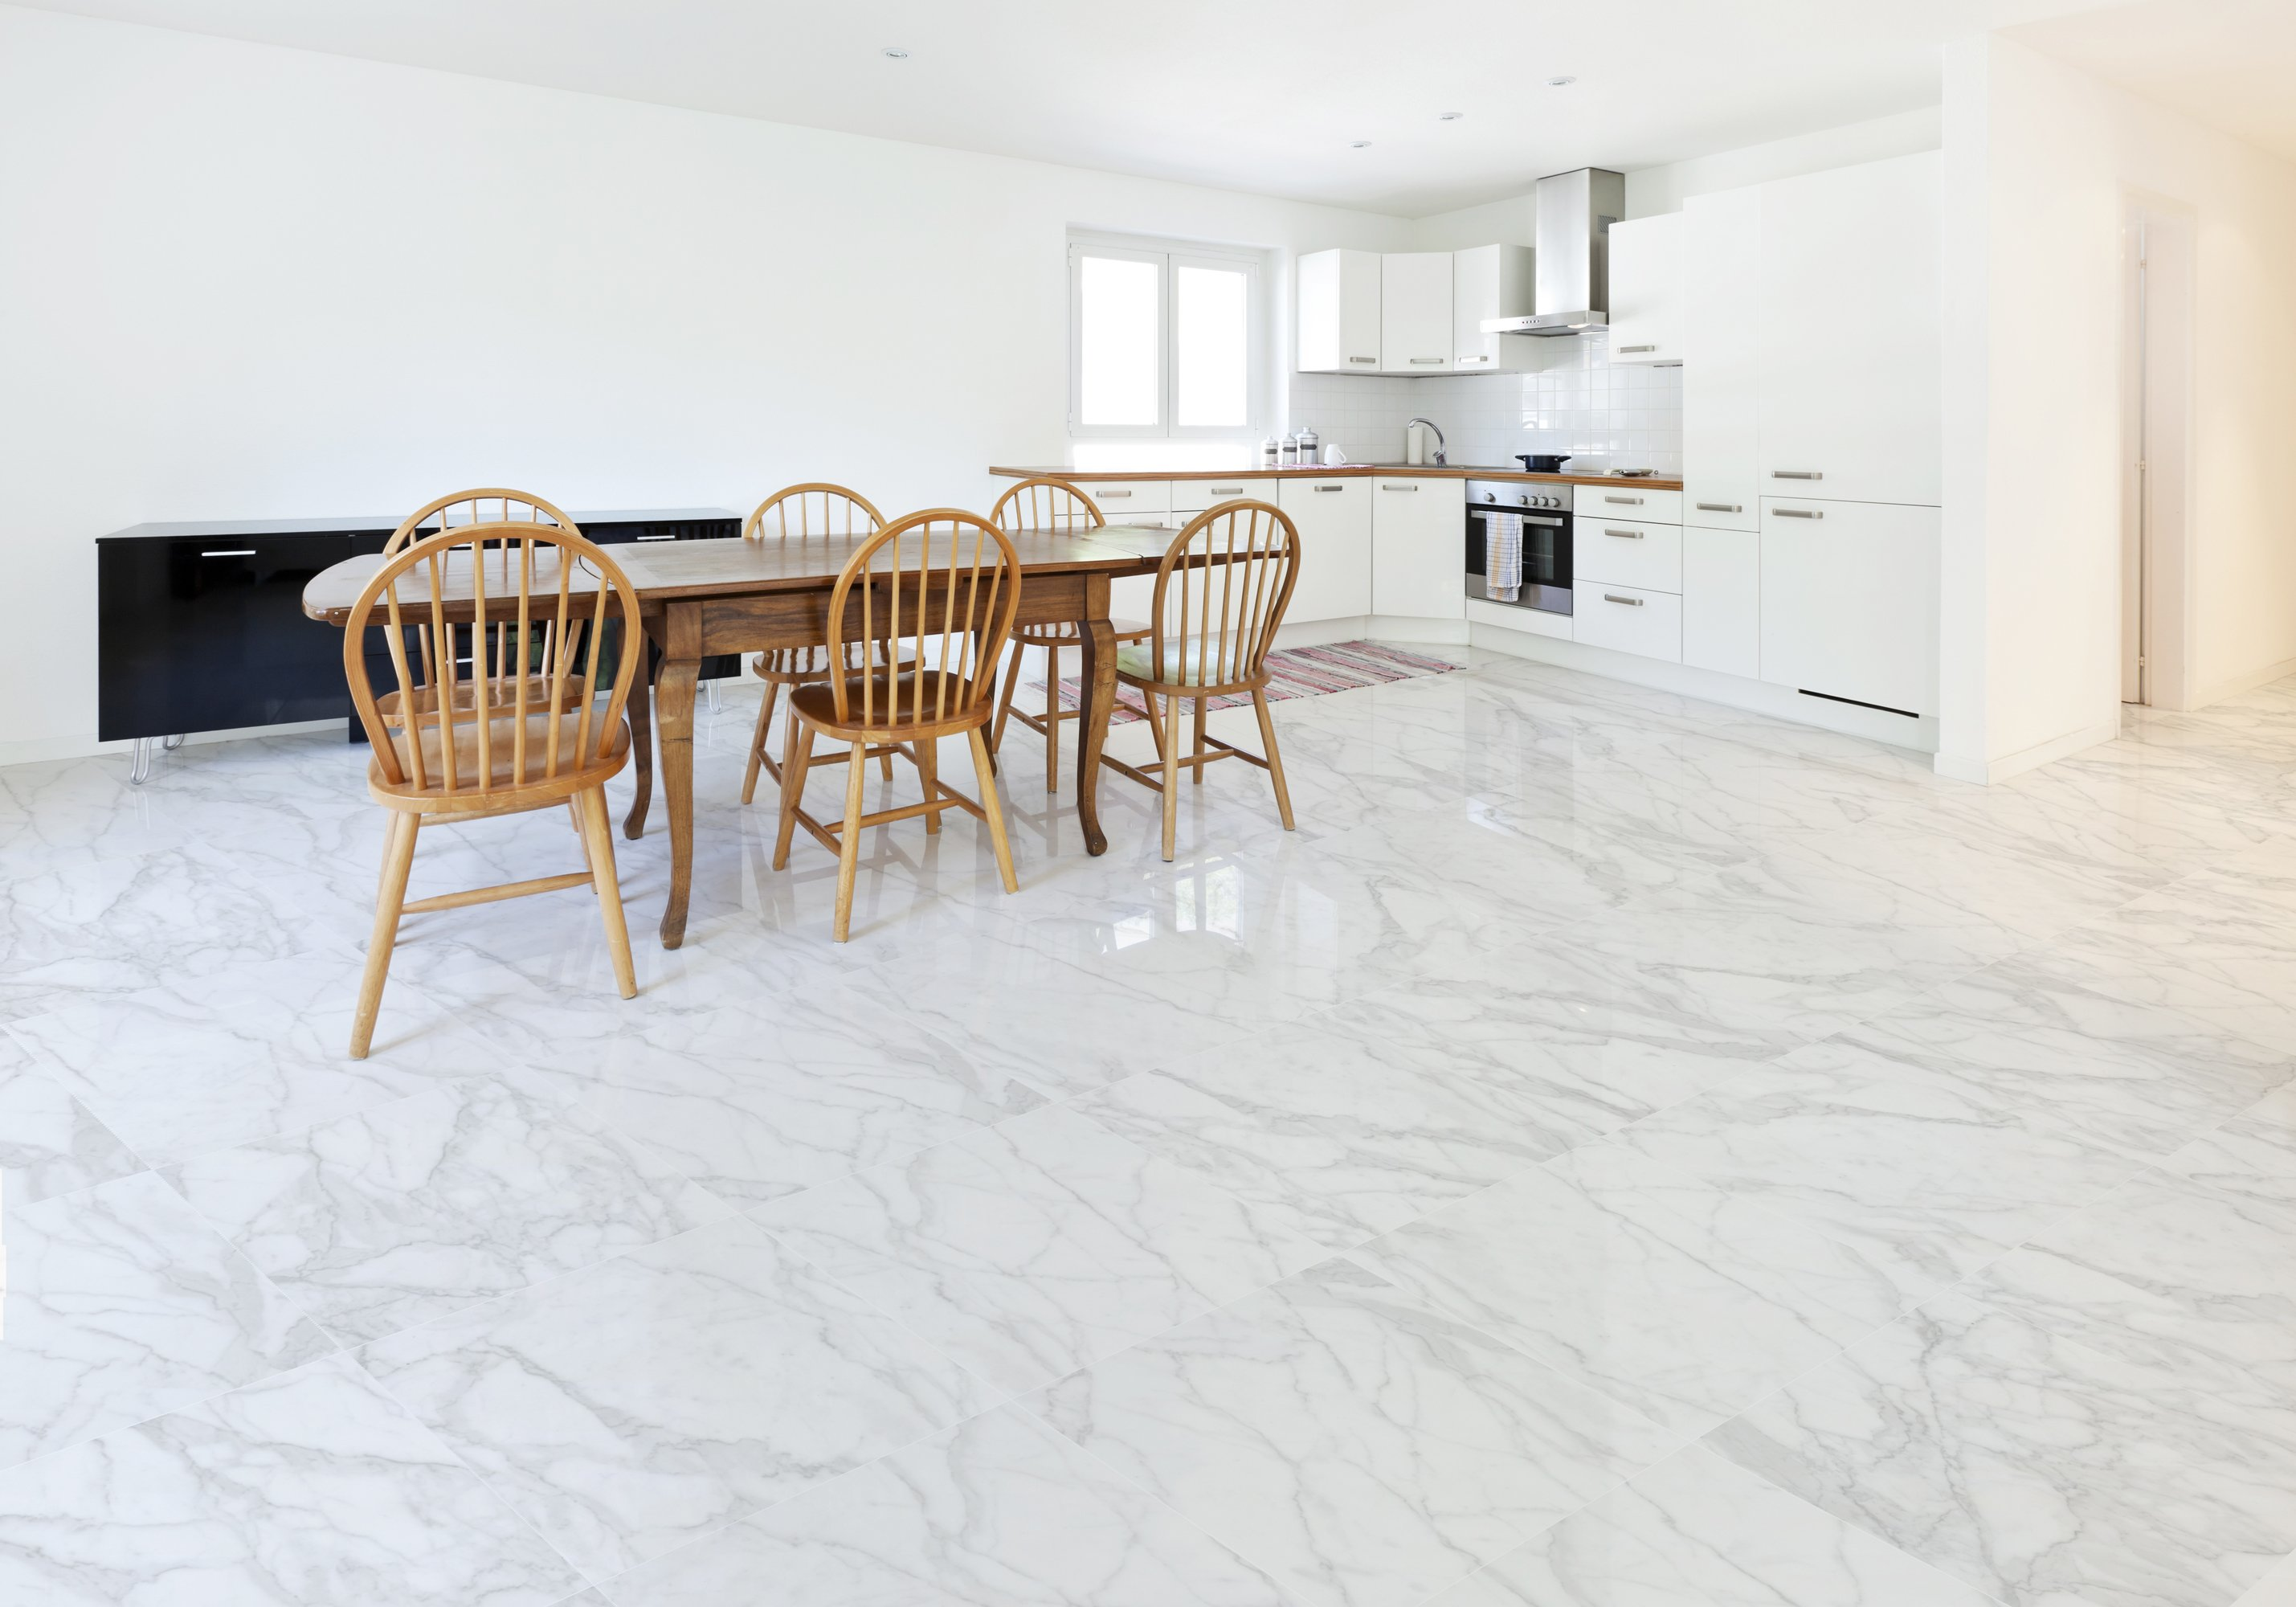 2019 Kitchen Flooring Trends: 20+ Flooring Ideas for the